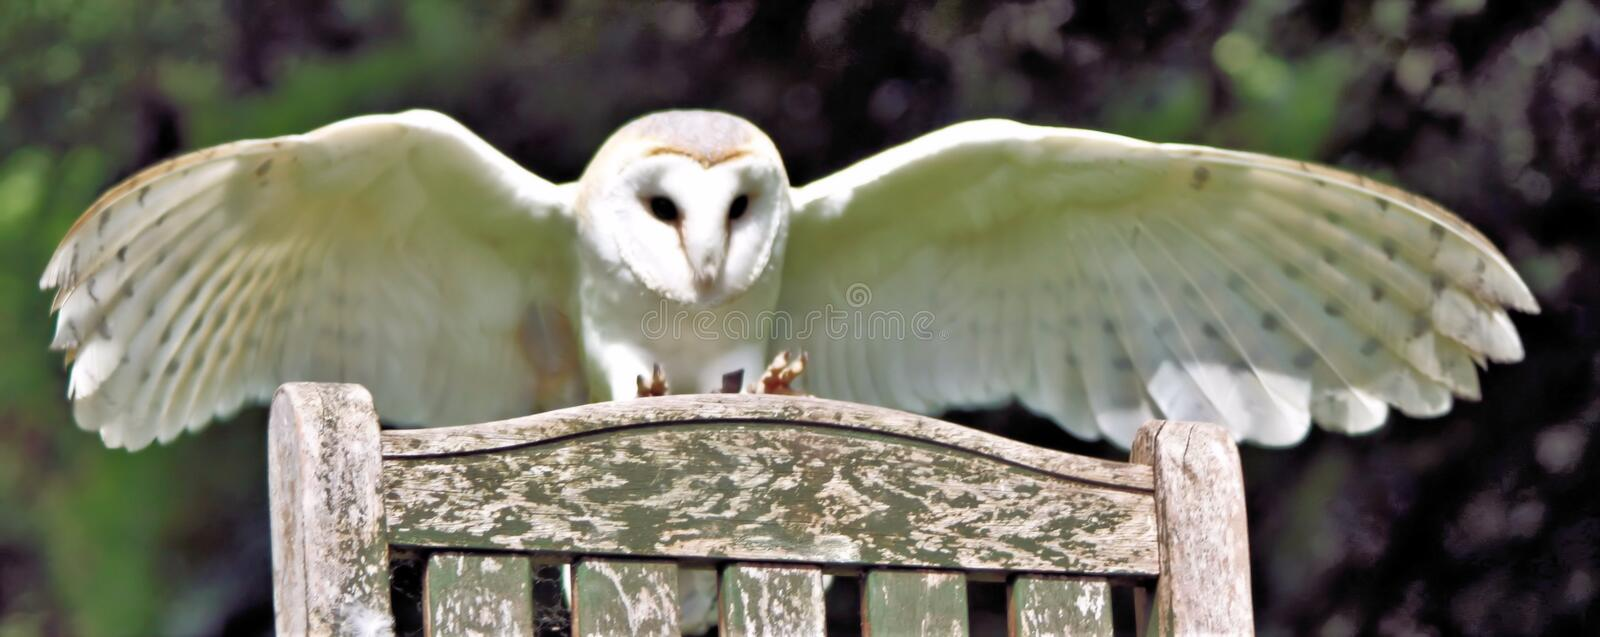 A view of a Barn Owl in flight stock photo